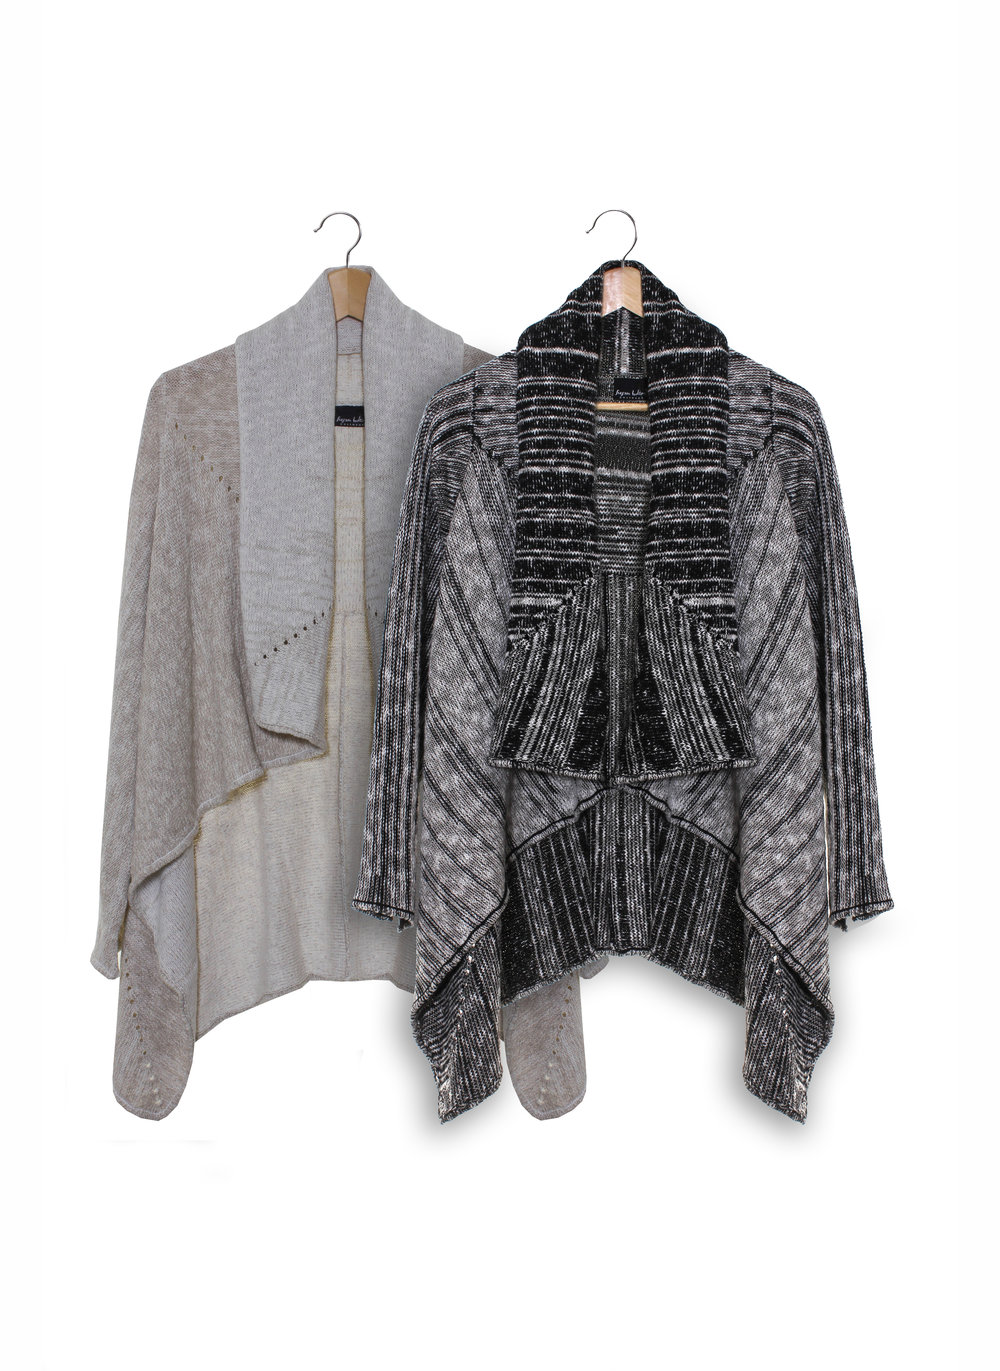 Susan Holton swing wrap jacket knit in cotton and linen.jpg